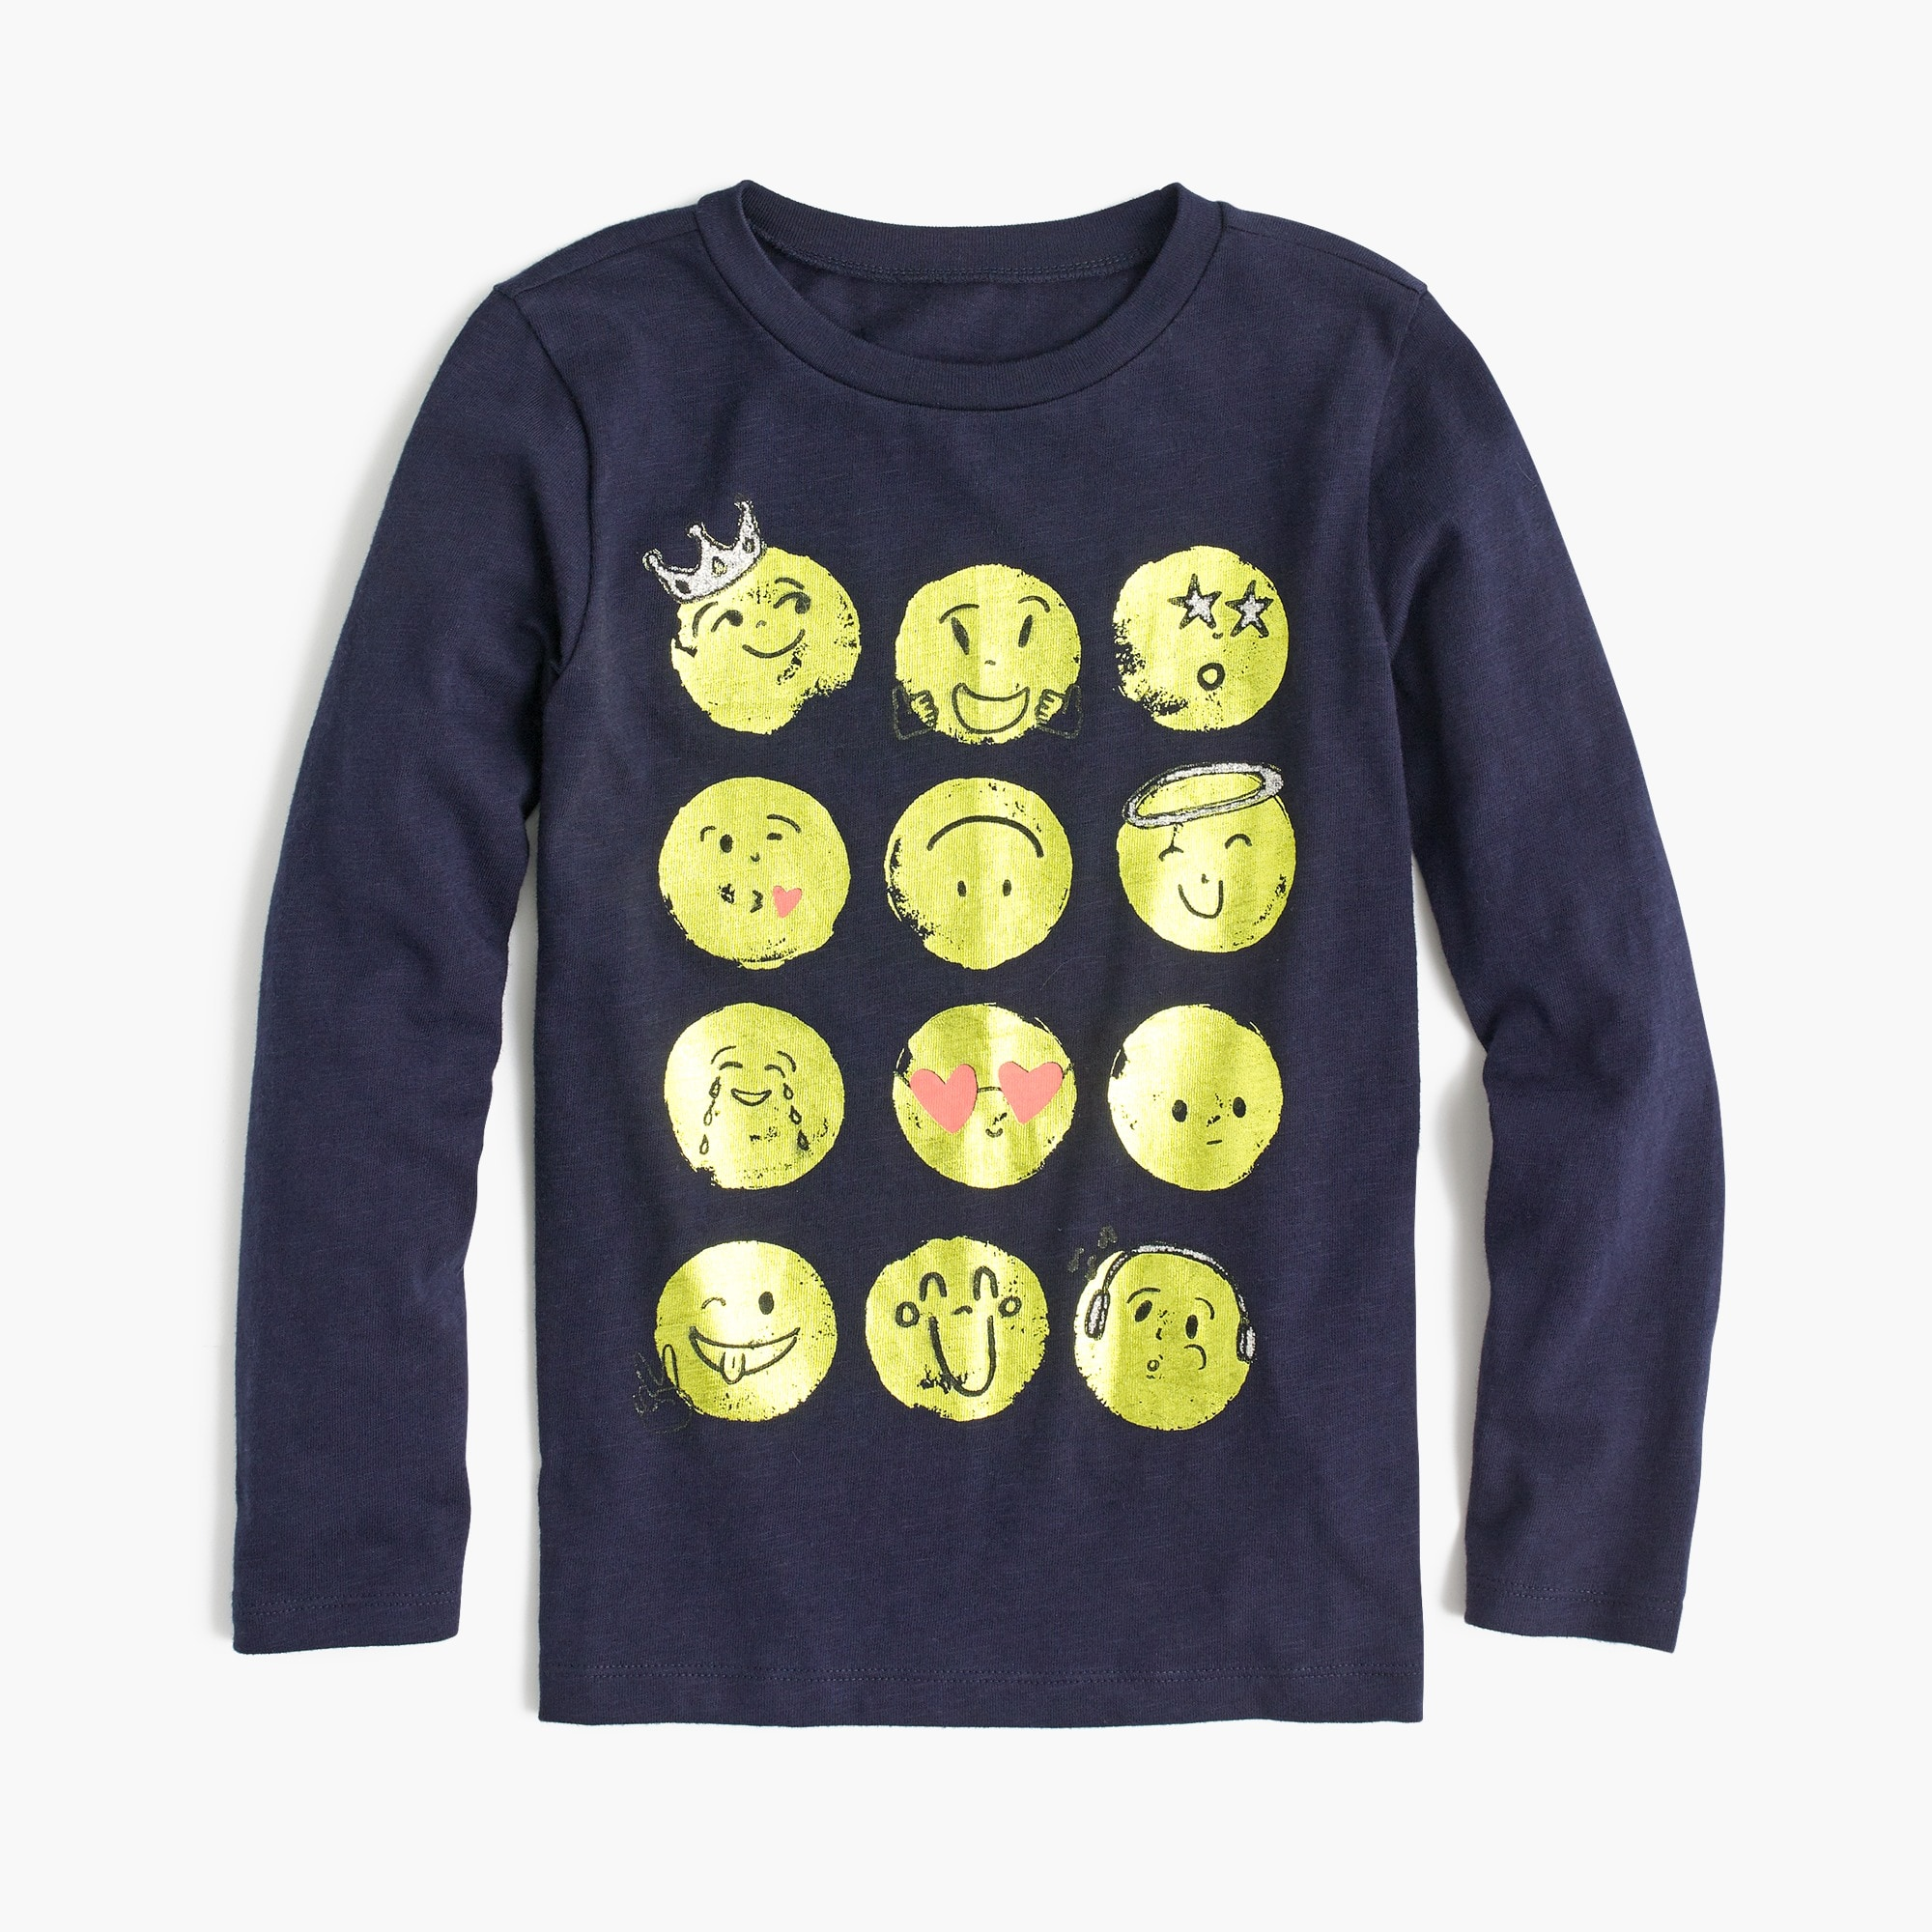 Image 1 for Girls' long-sleeve emoji T-shirt